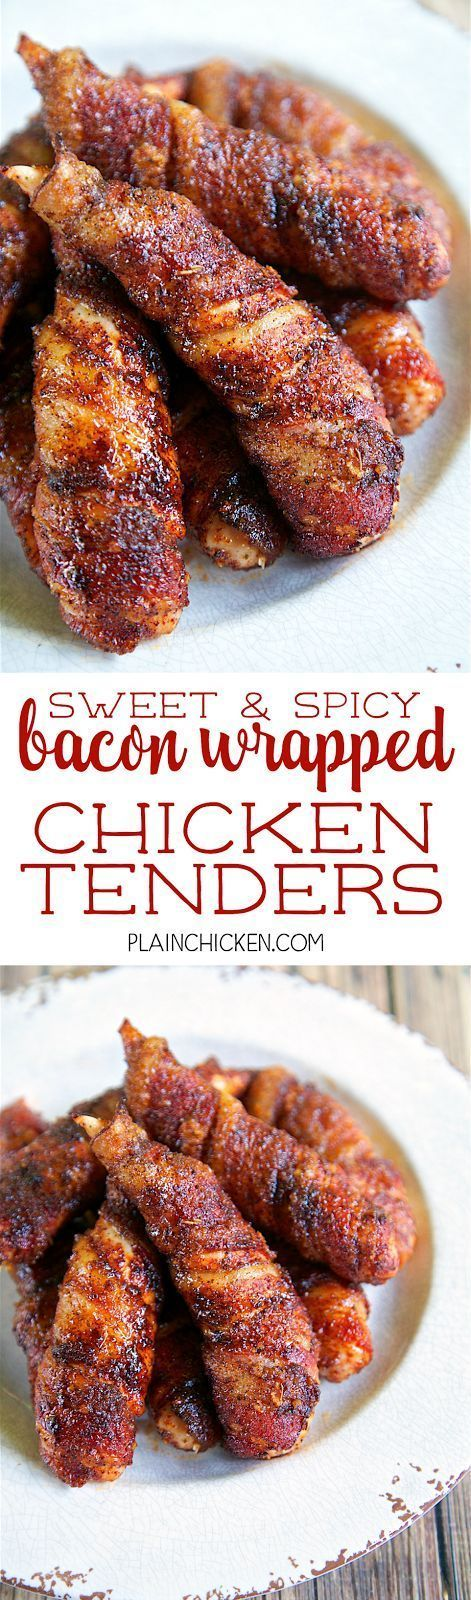 Sweet & Spicy Bacon Wrapped Chicken Tenders - one of the best things we ate last week. Only 4 simple ingredients - chicken, bacon, brown sugar and chili powder. They only take about 5 minutes to make and are ready to eat in under 30 minutes.